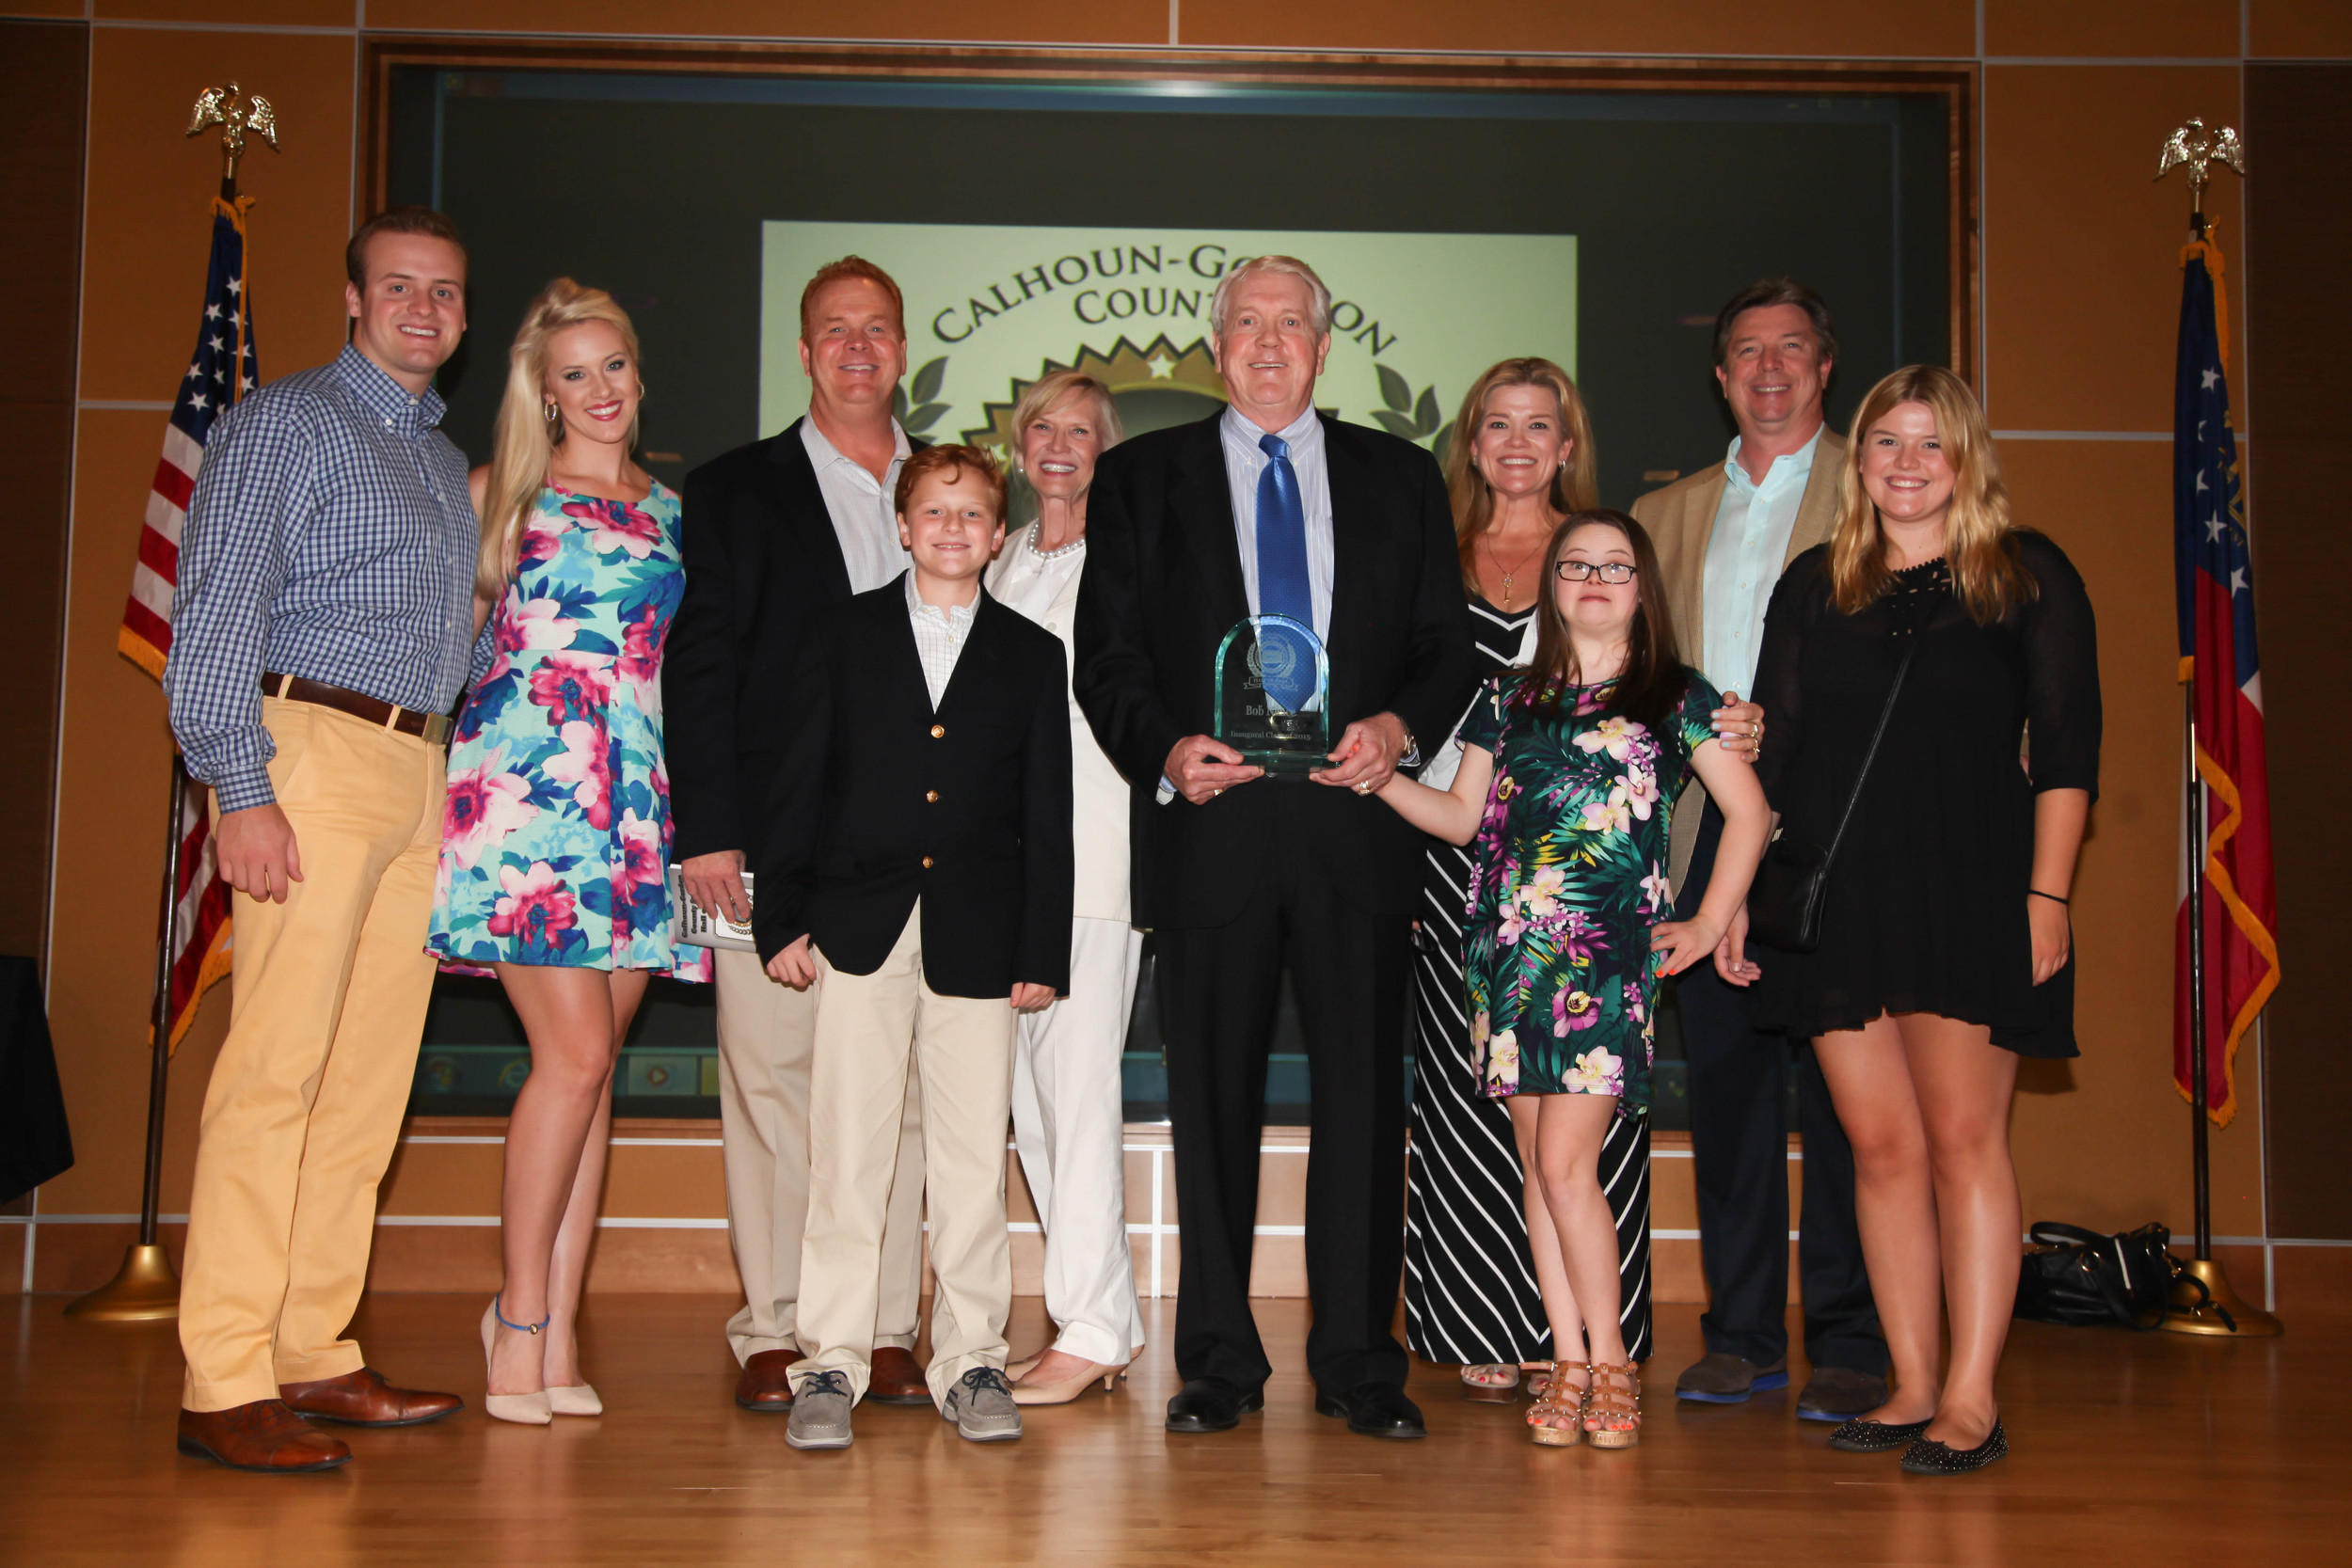 Calhoun-Gordon-County-Sports-Hall-of-Fame-2015-220.jpg